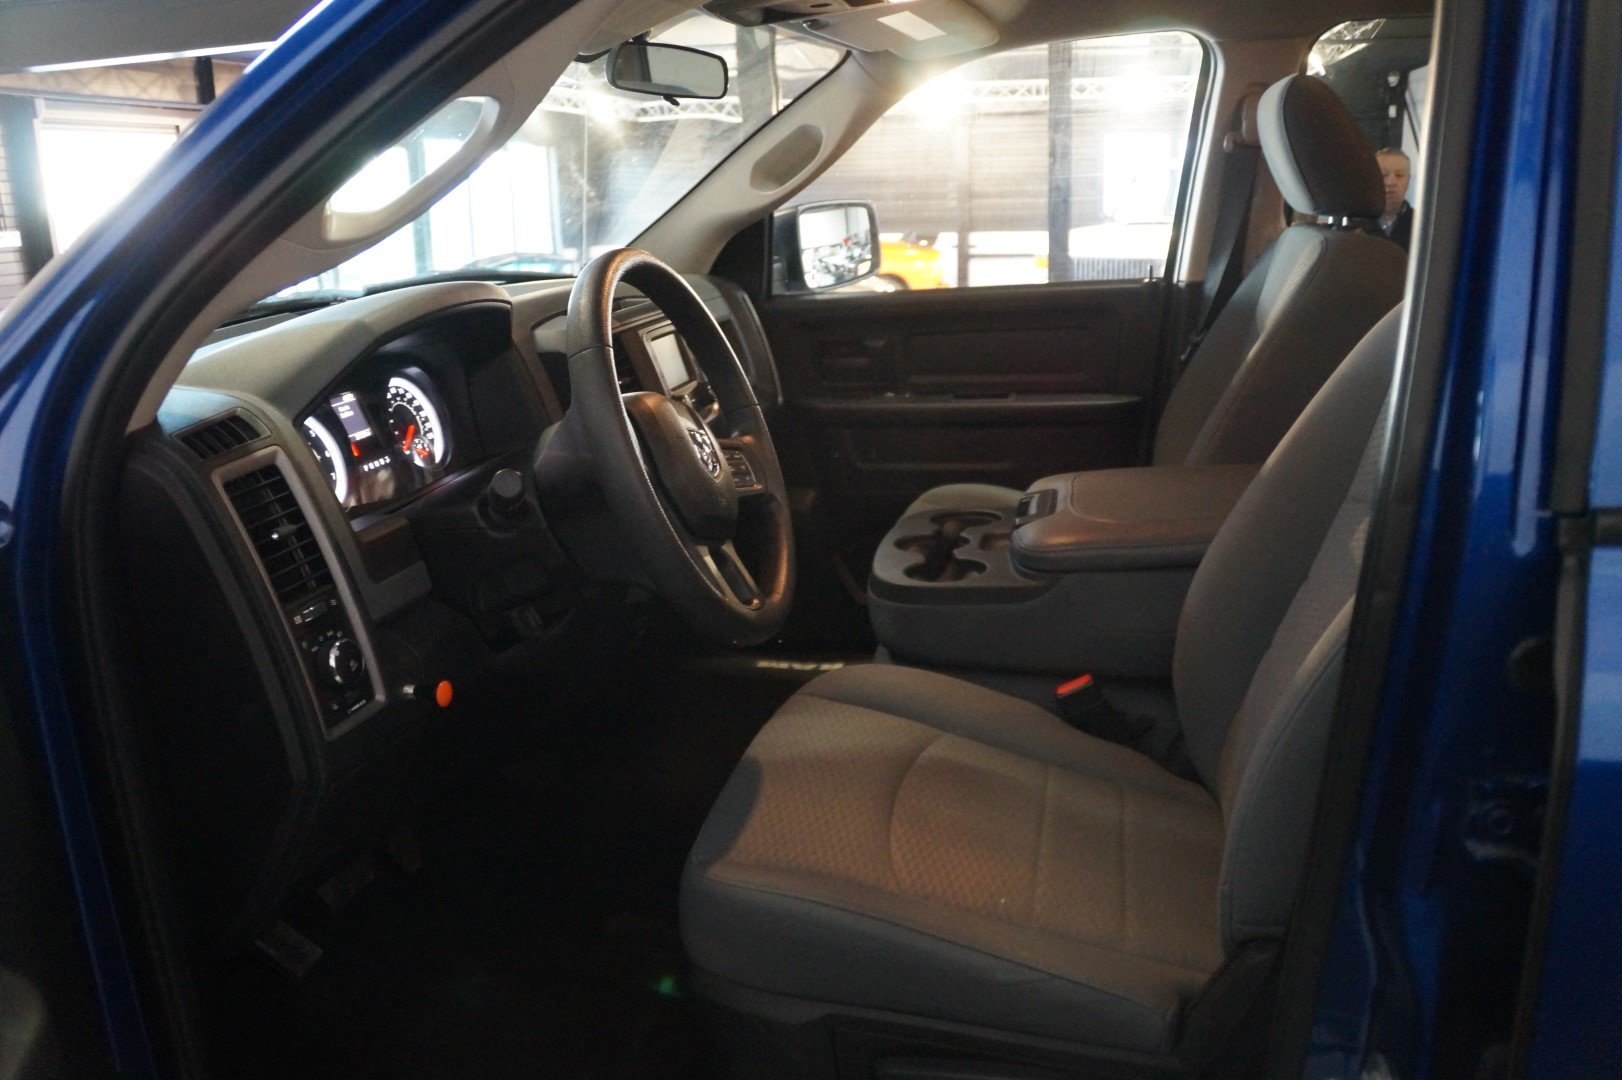 DODGE RAM 1500 (2017) For Sale (picture 2 of 6)